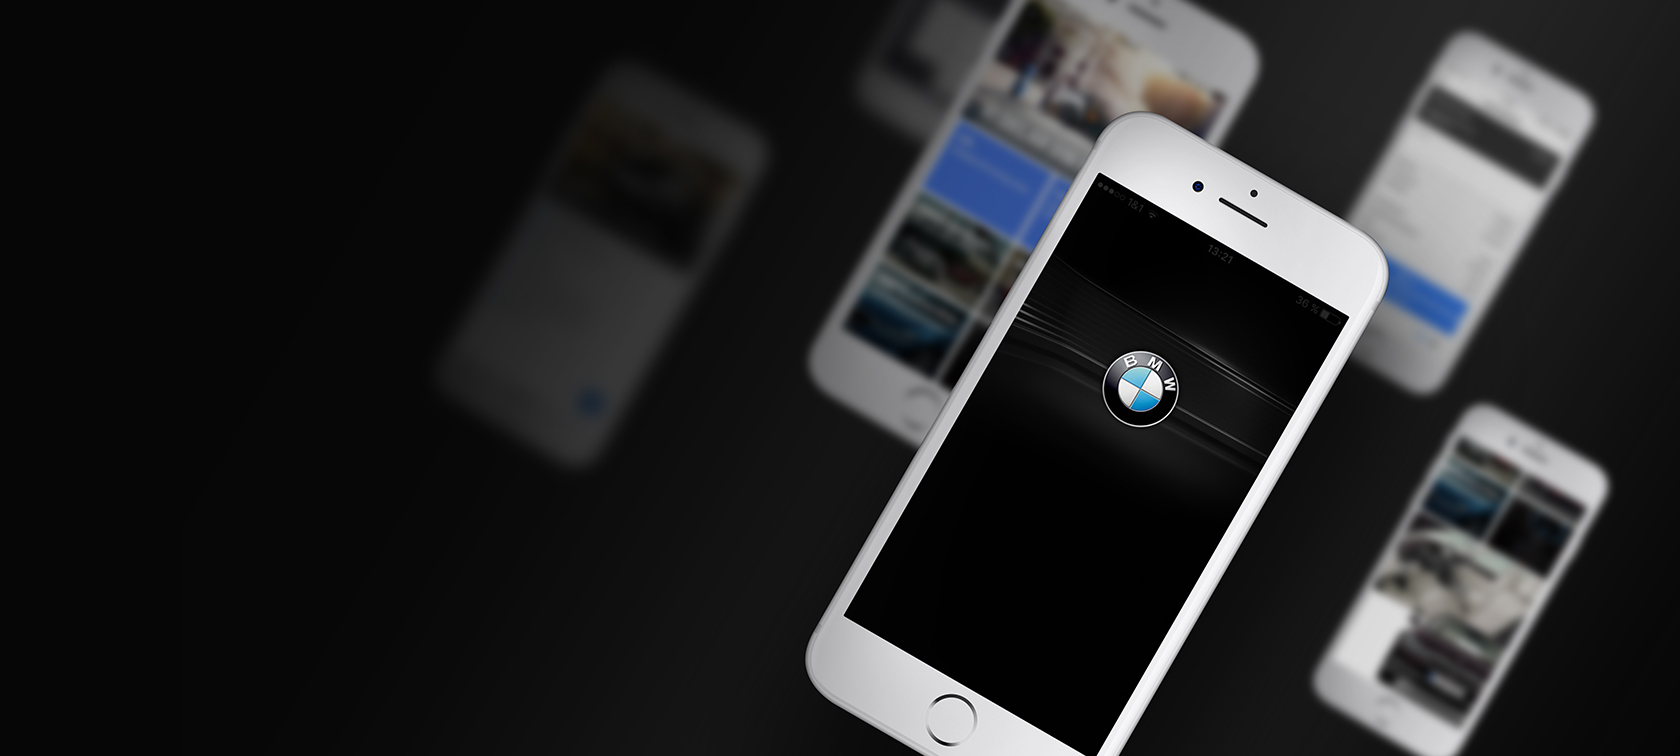 BMW Apps, BMW Financial Services